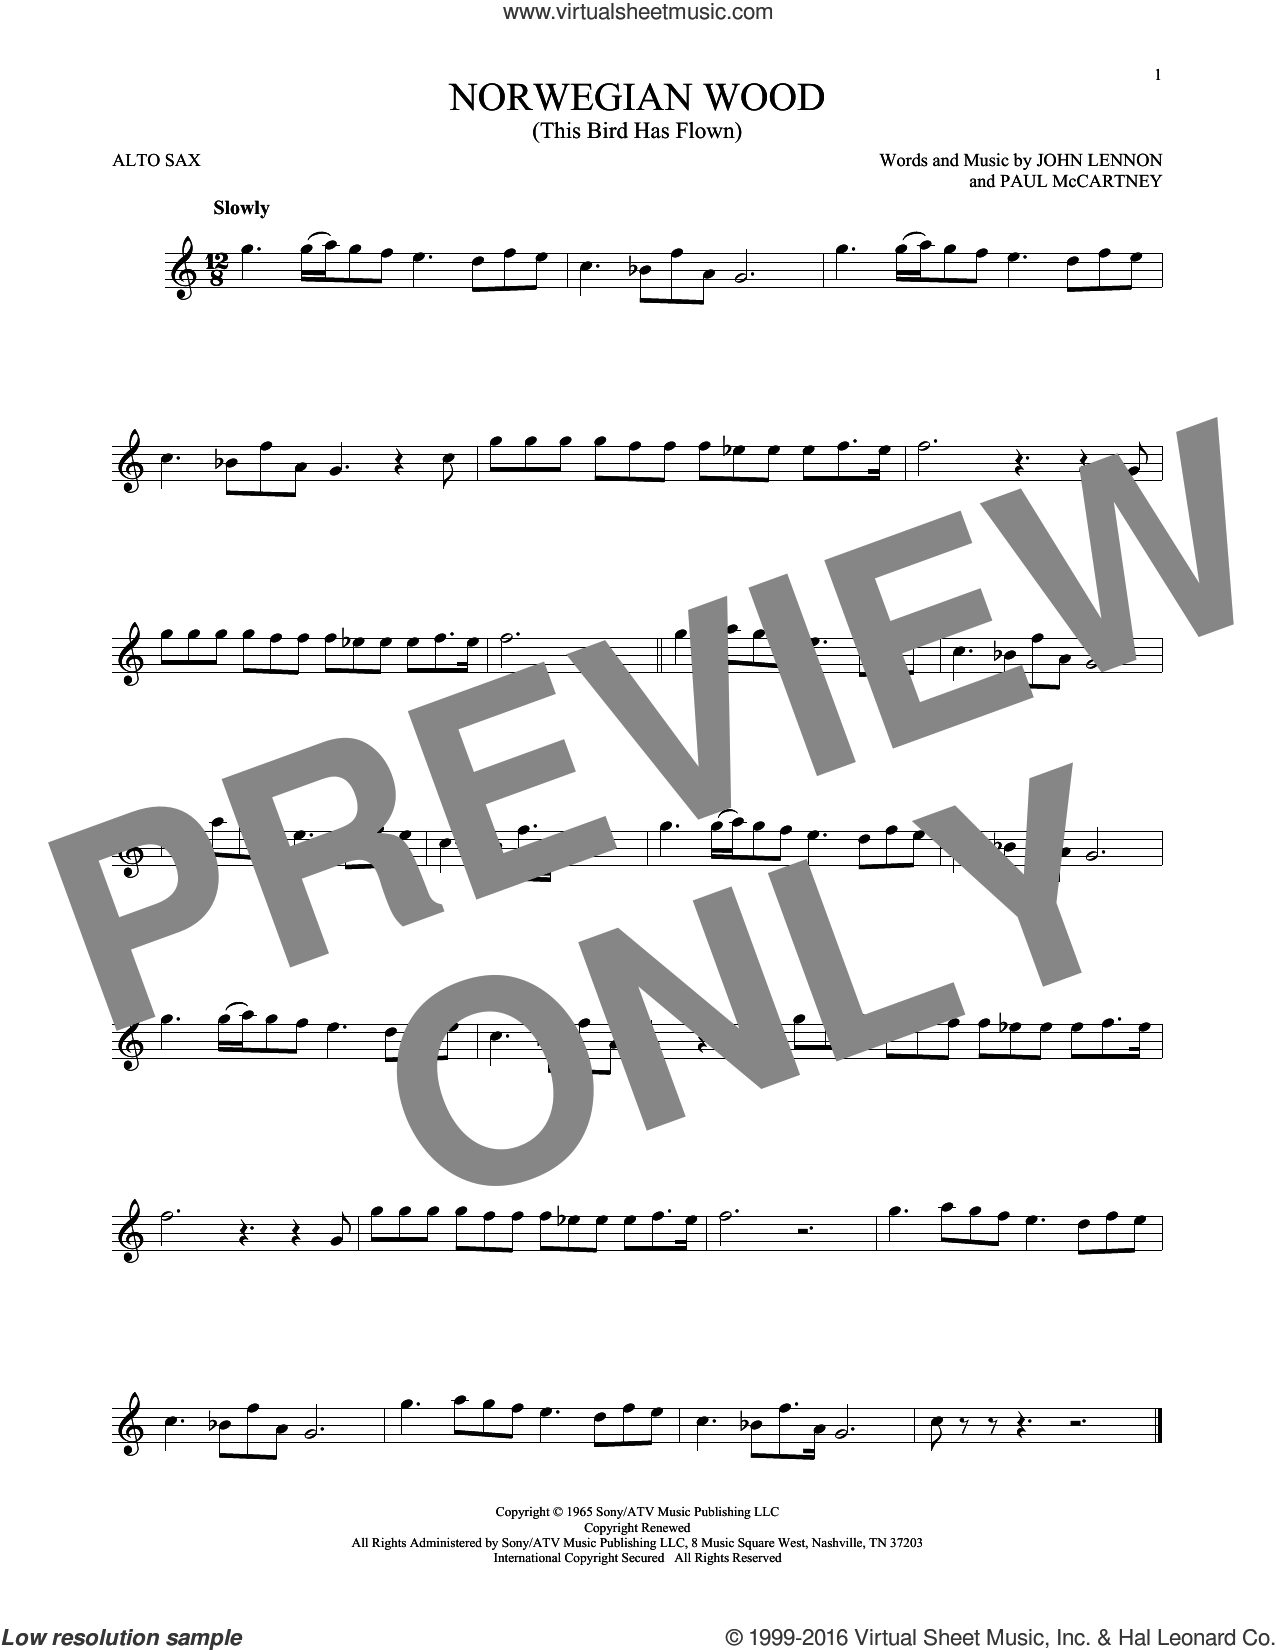 Norwegian Wood (This Bird Has Flown) sheet music for alto saxophone solo by Paul McCartney, The Beatles and John Lennon. Score Image Preview.